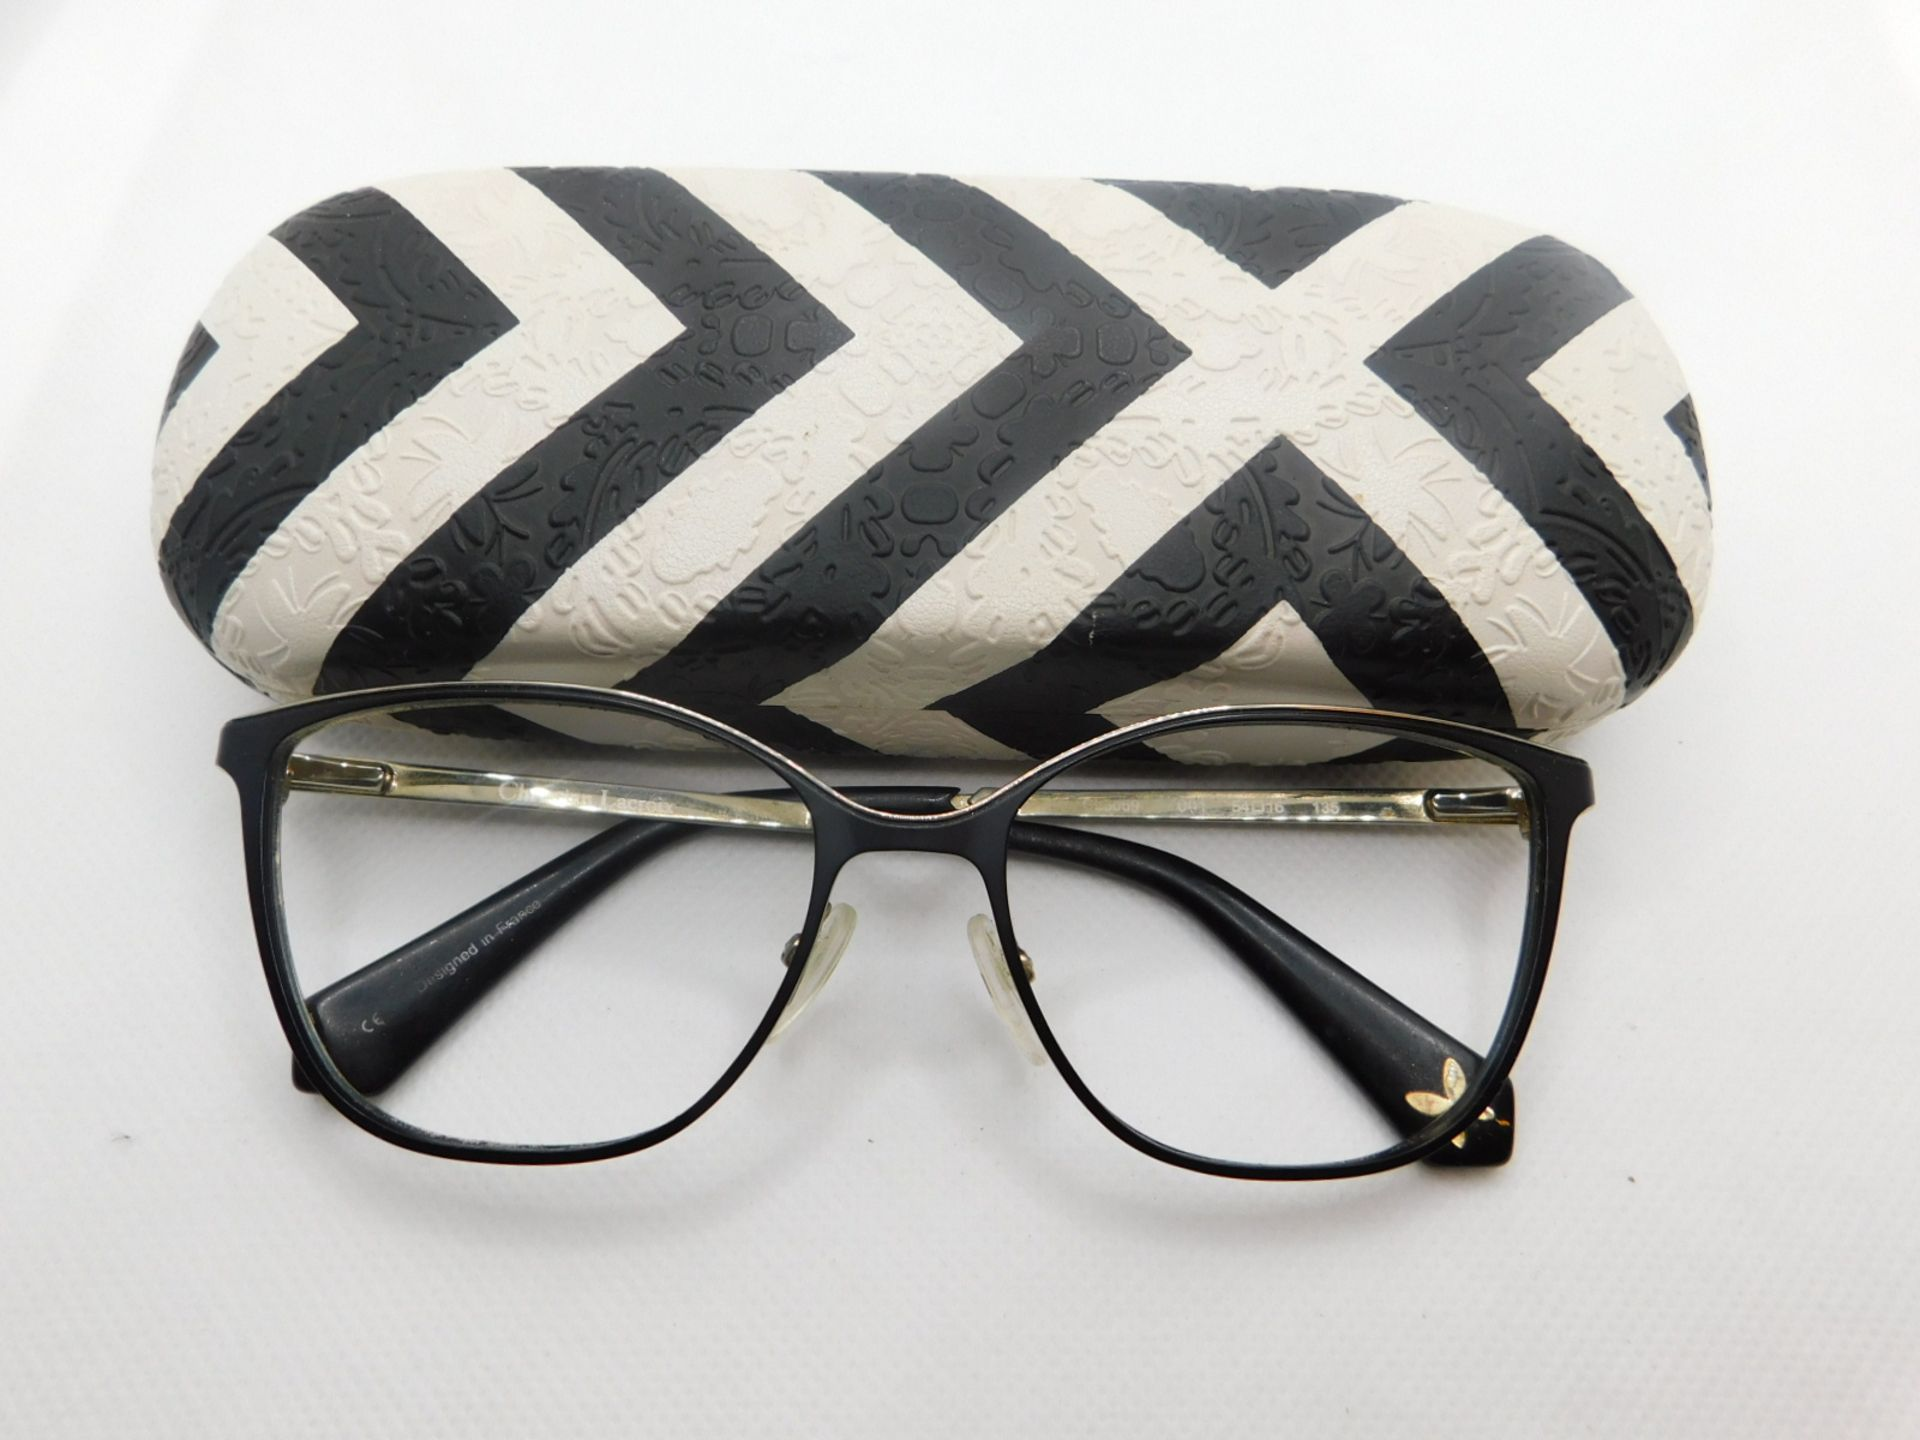 1 PAIR OF CHRISTIAN LACROIX GLASSES FRAME WITH CASE MODEL CL3059 RRP £159